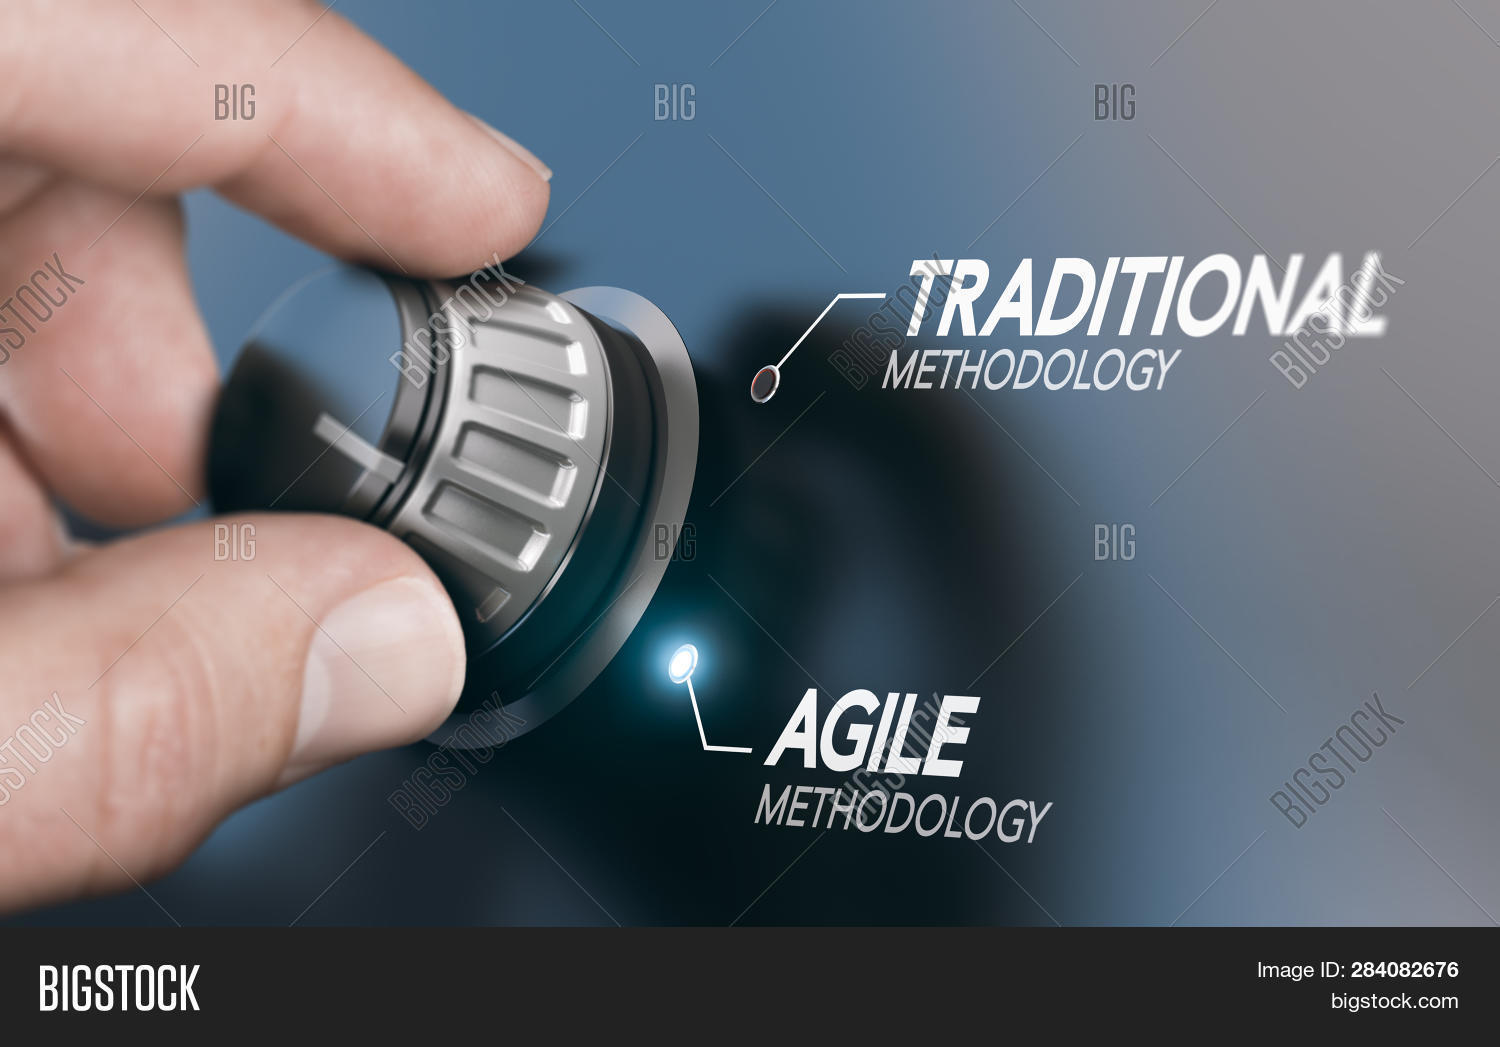 agile,agility,app,application,approach,button,change,changing,choice,choose,choosing,classic,comparison,deployment,development,finger,hand,it,knob,management,method,methodology,mixed,organisation,organization,planning,pm,project,selection,service,software,traditional,transition,transitioning,versus,vs,waterfall